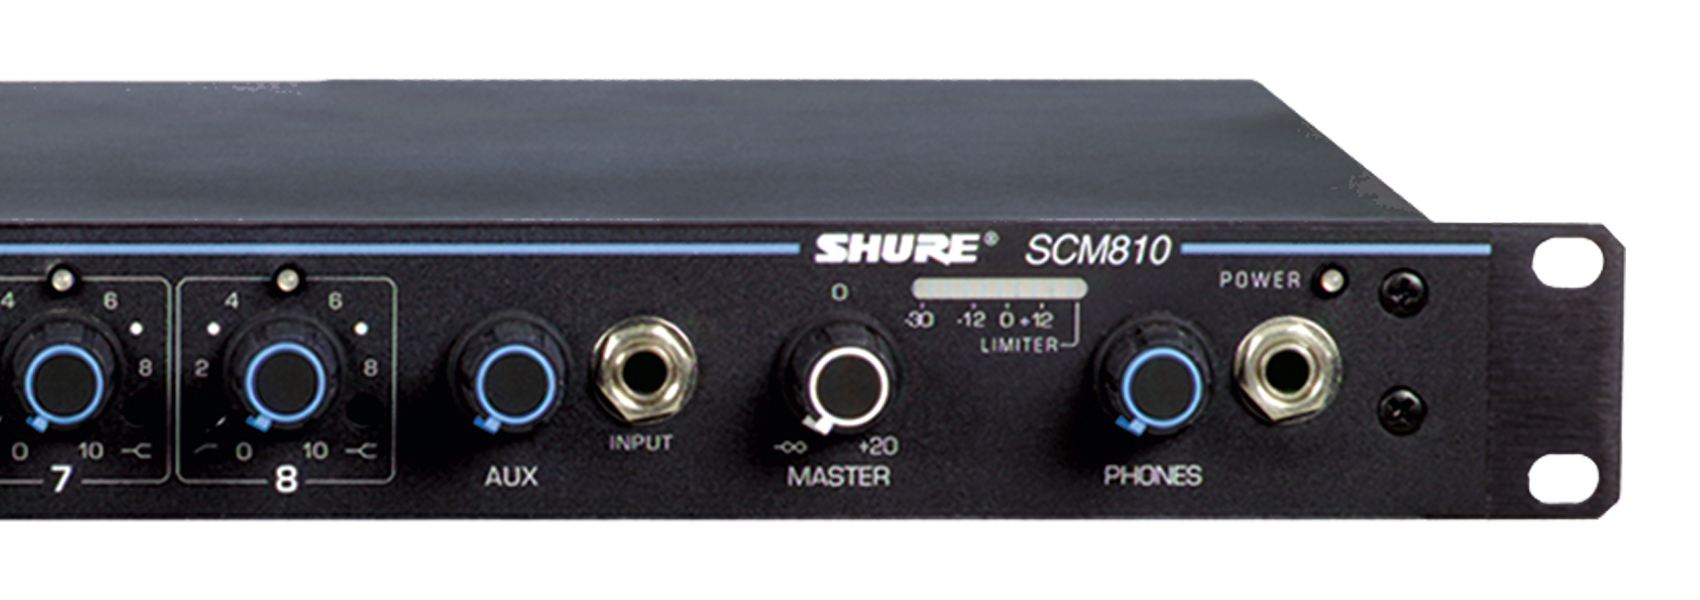 Illustration Shure SCM810 Eight Channel Automatic Mixer